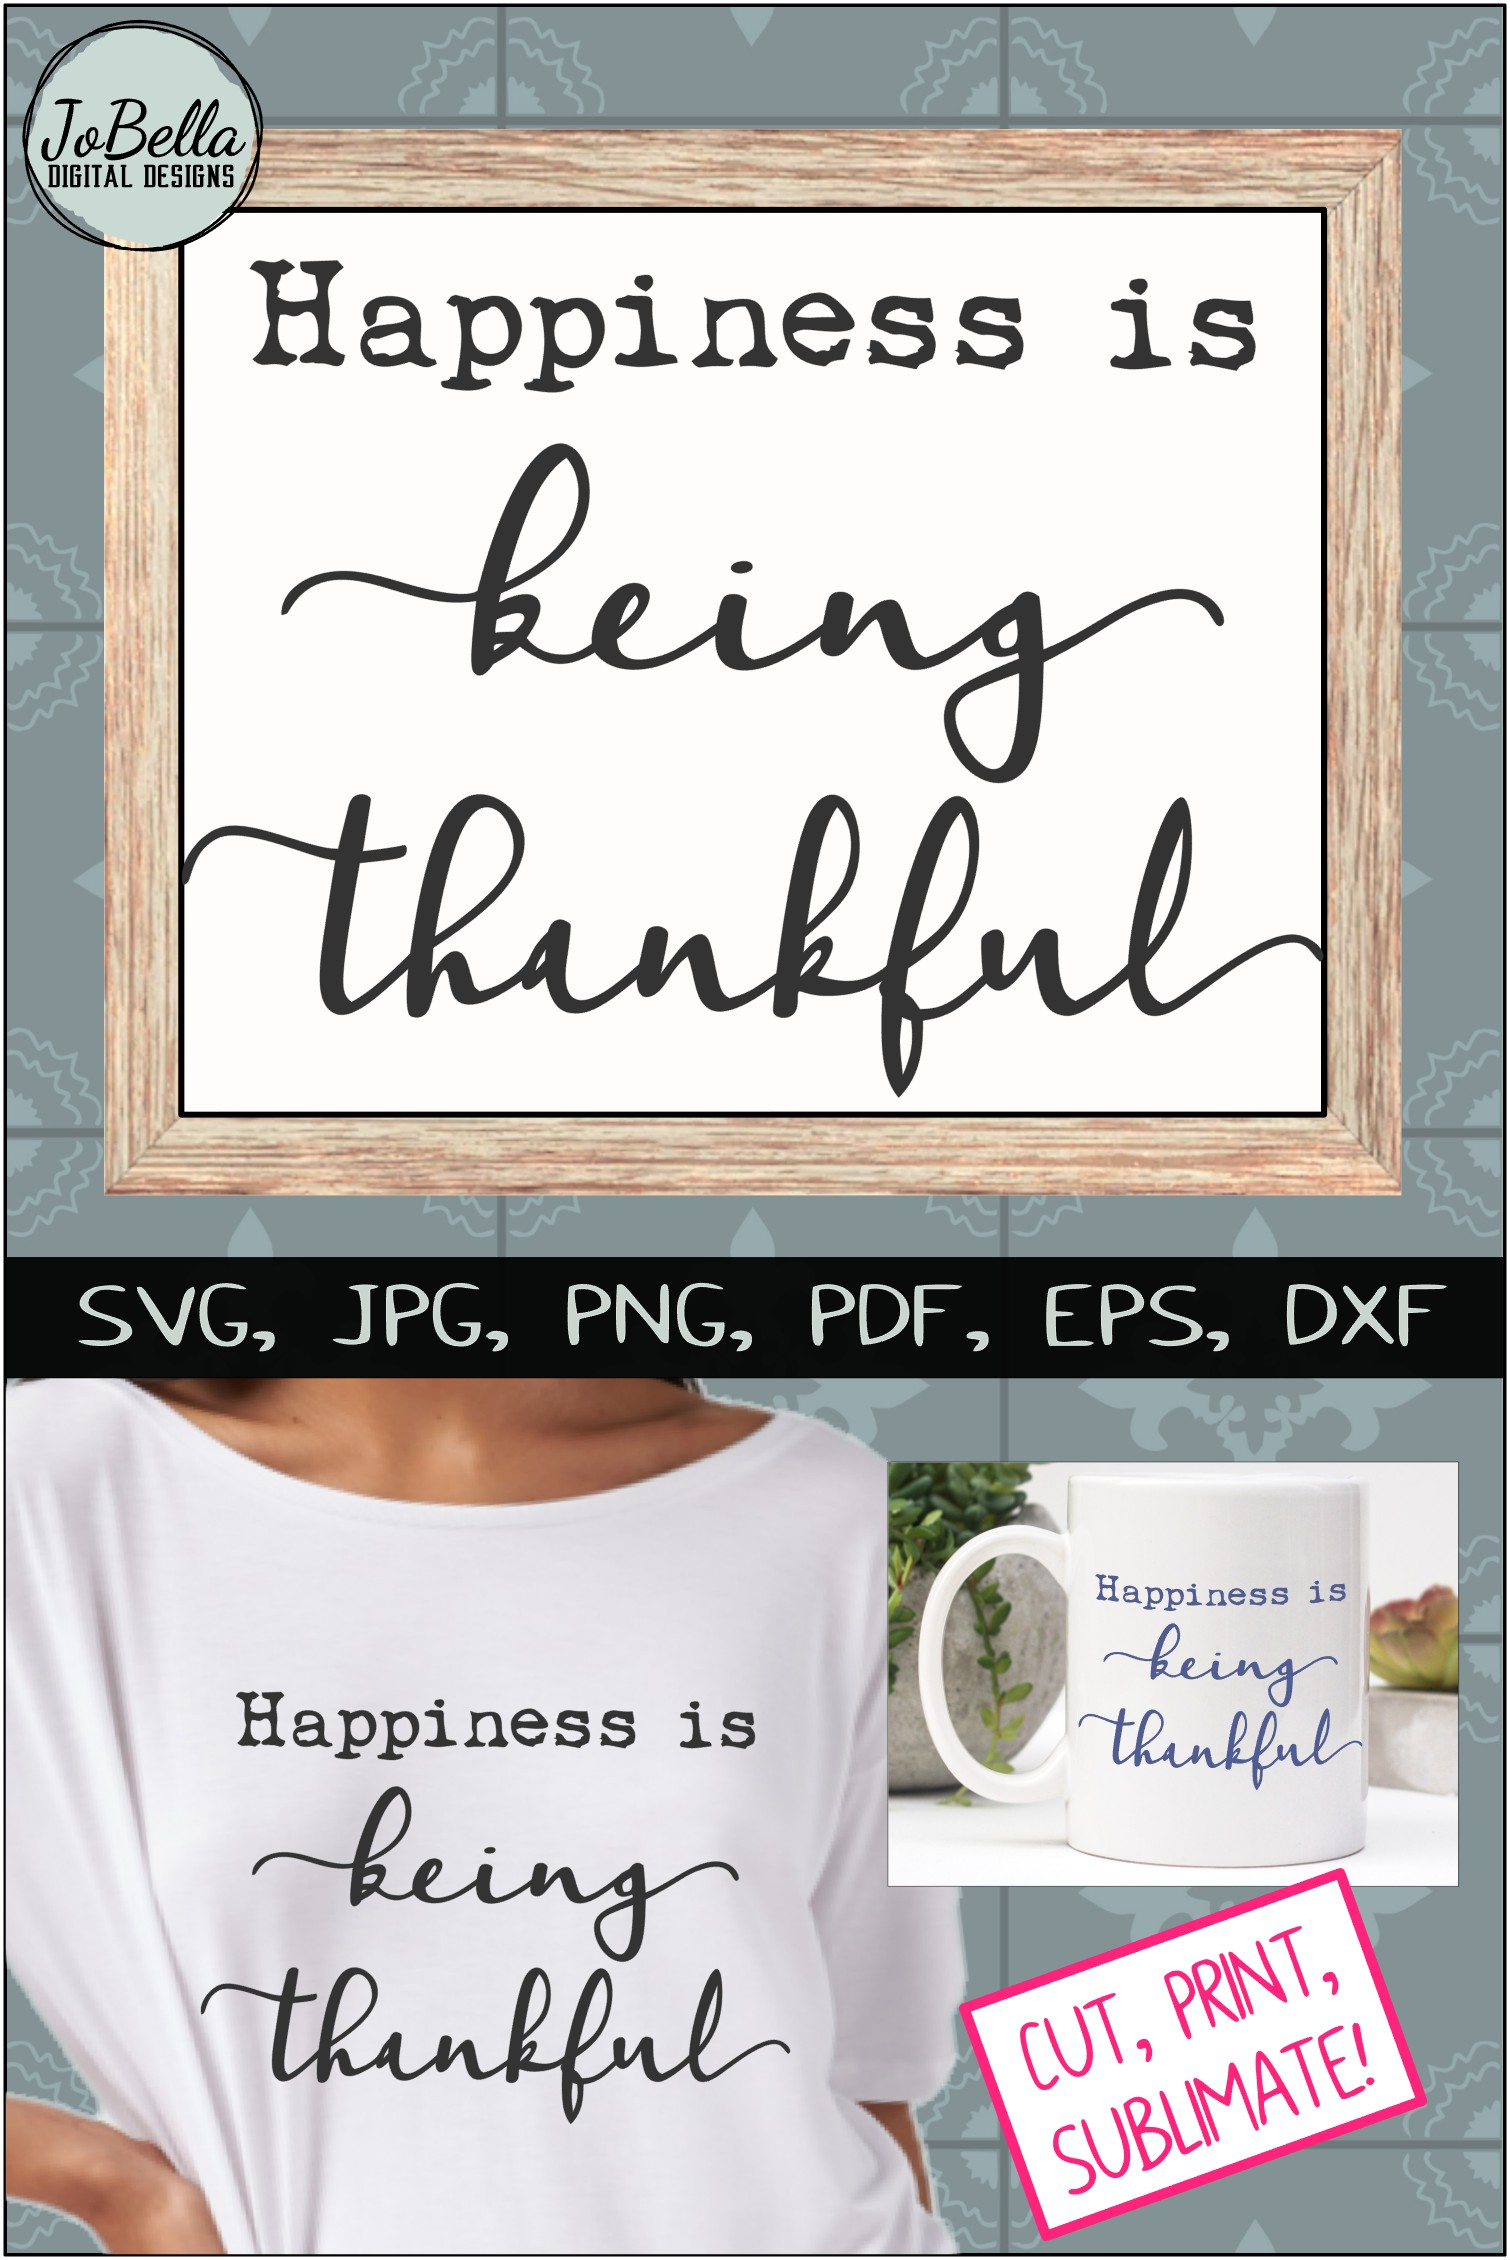 Being Thankful Thanksgiving SVG, Sublimation PNG & Printable example image 5